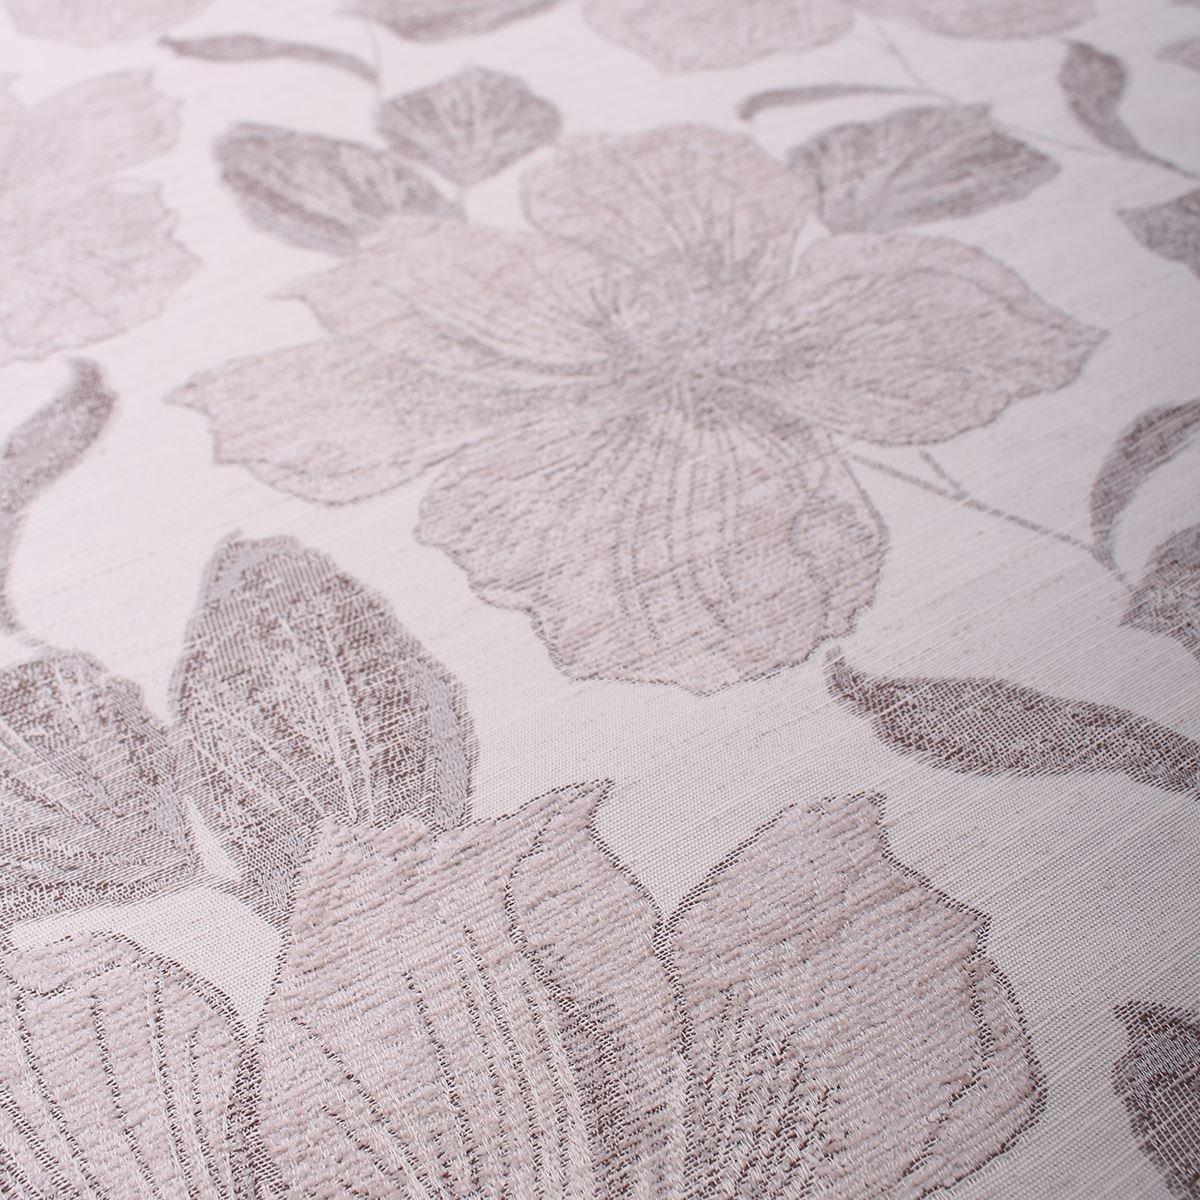 Floral Chenille Neutral Patterened Sofa Seating Upholstery Fabric